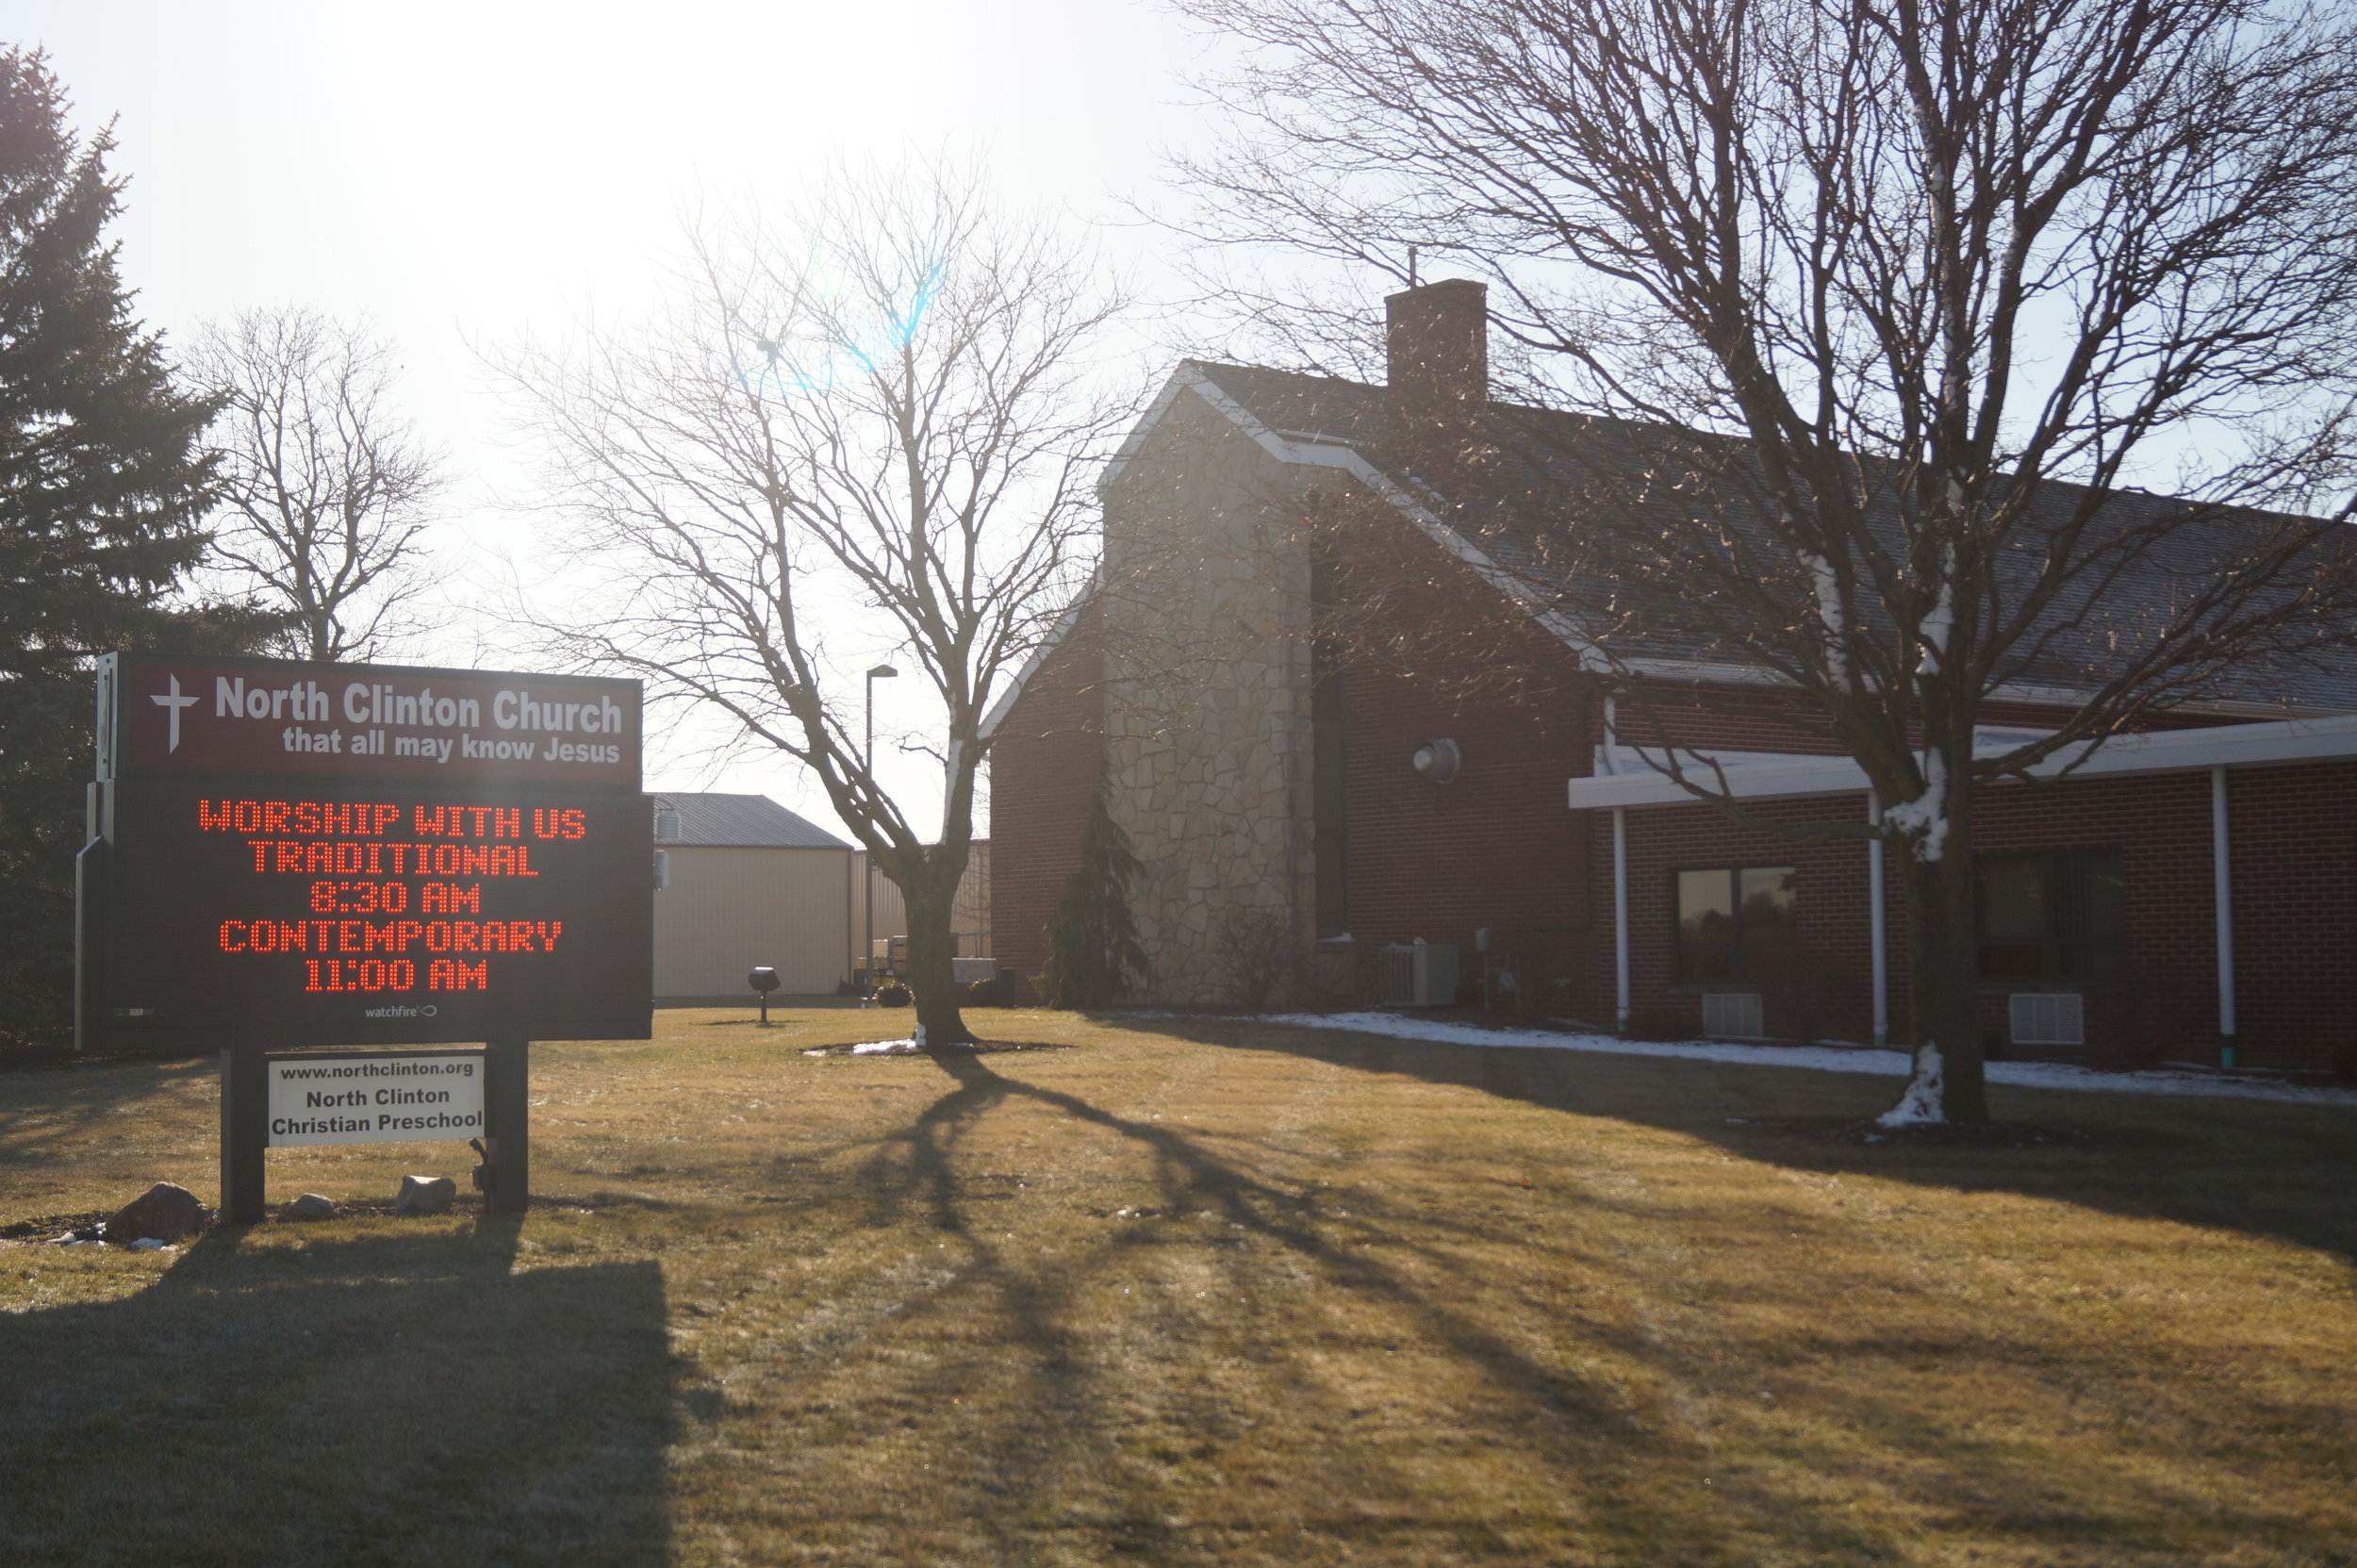 Welcome to North Clinton Church located at 831 W. Linfoot St., Wauseon.